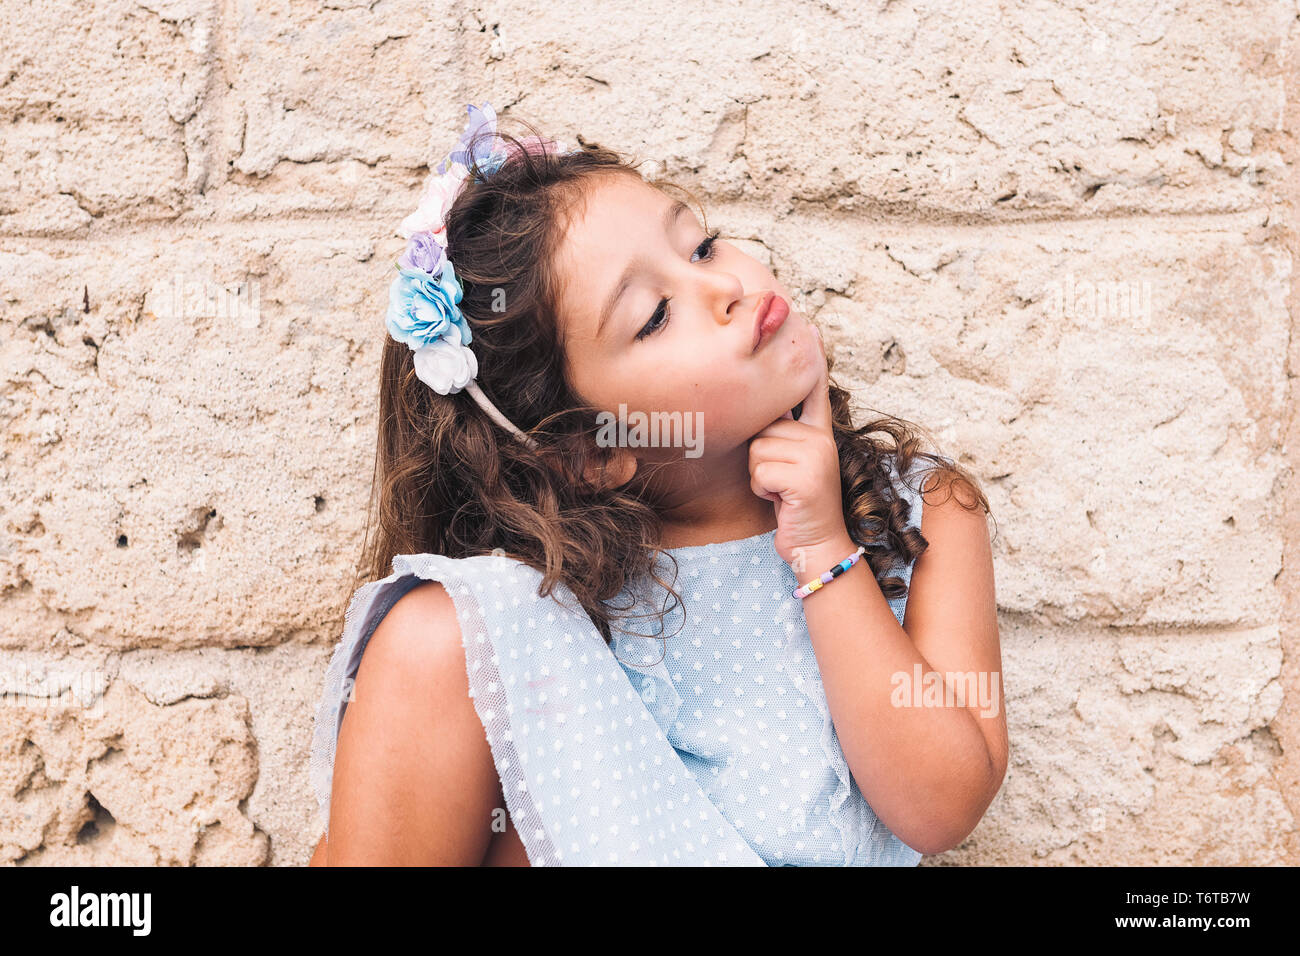 funny little girl doing like she thinks, is in front of a stone wall and wears a blue dress and a flower headband Stock Photo